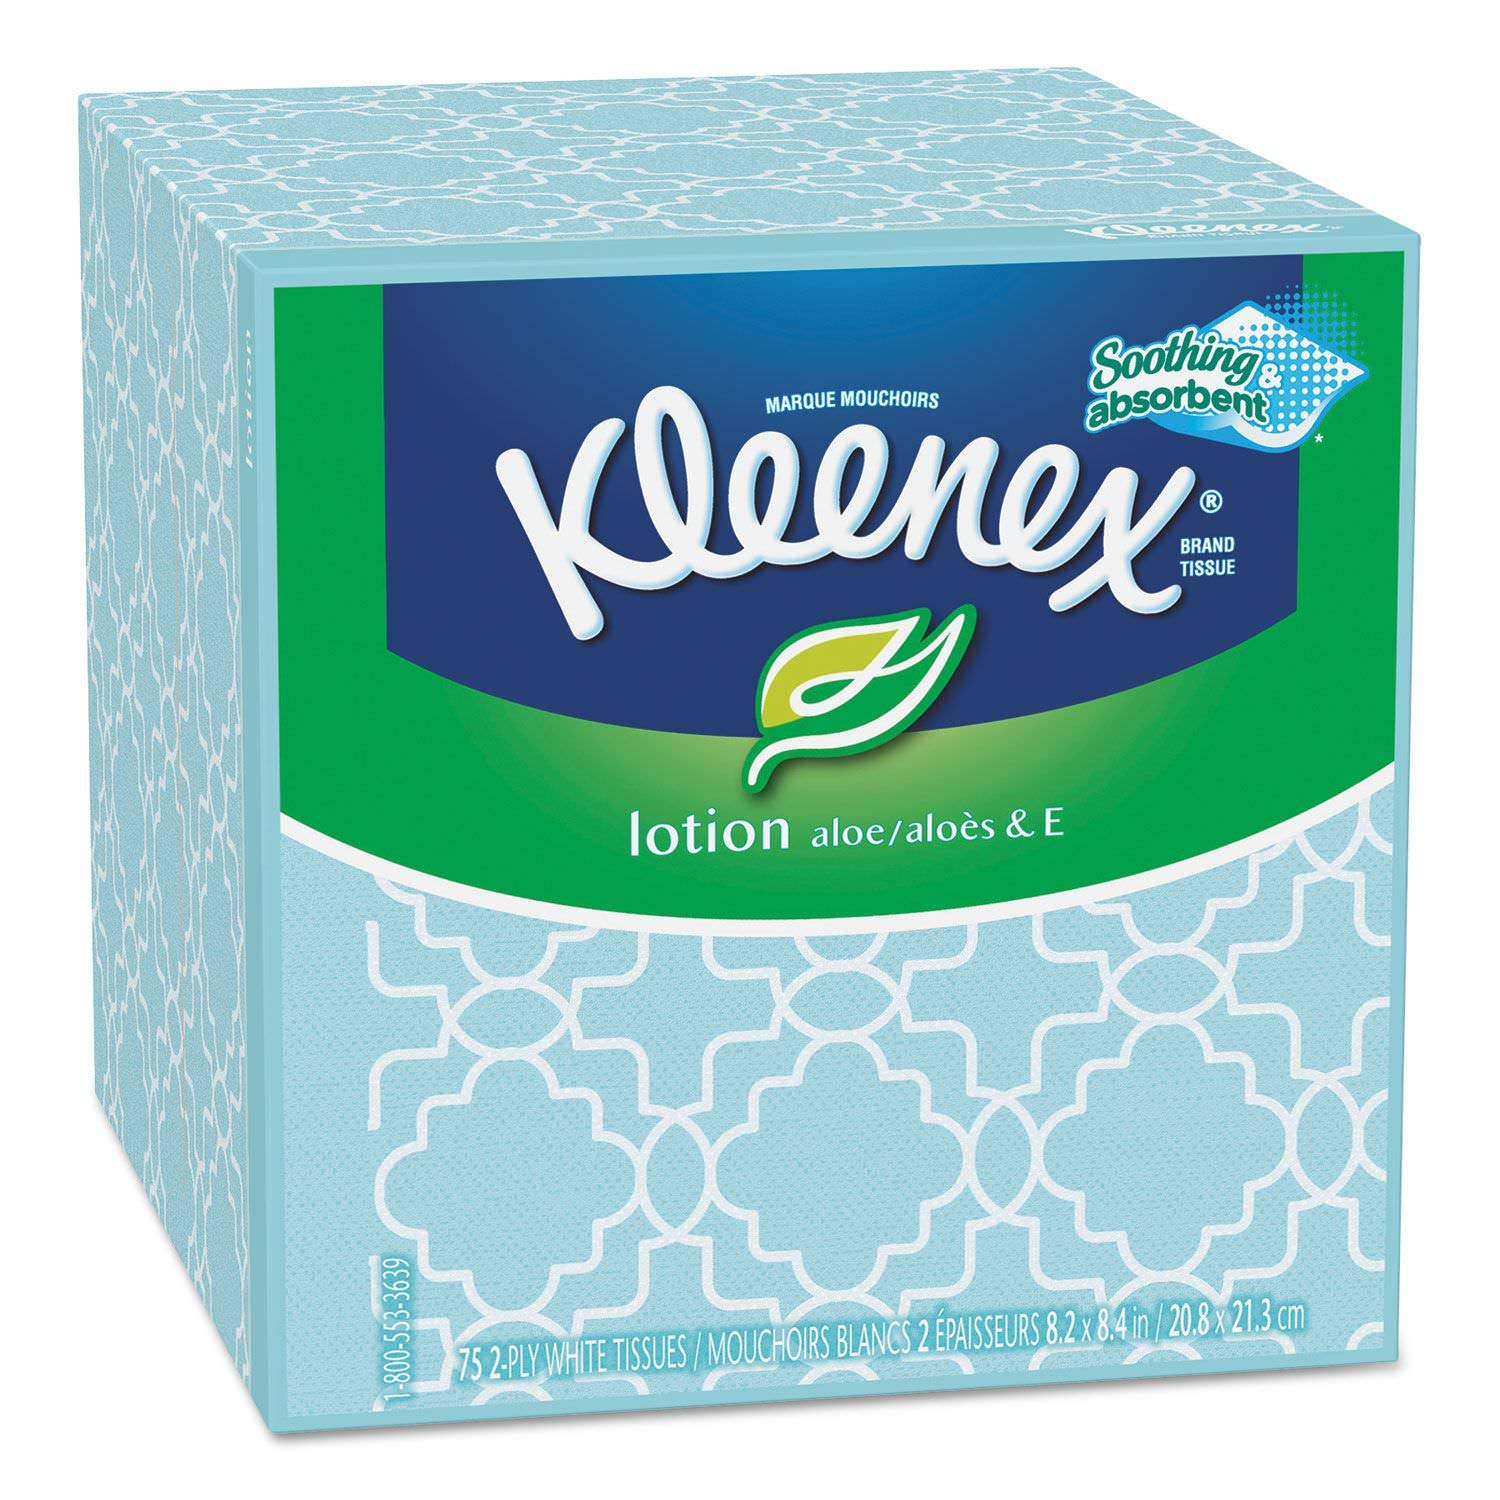 Kleenex Boutique tiisues Pack of 27 (Lotion Facial Tissue)